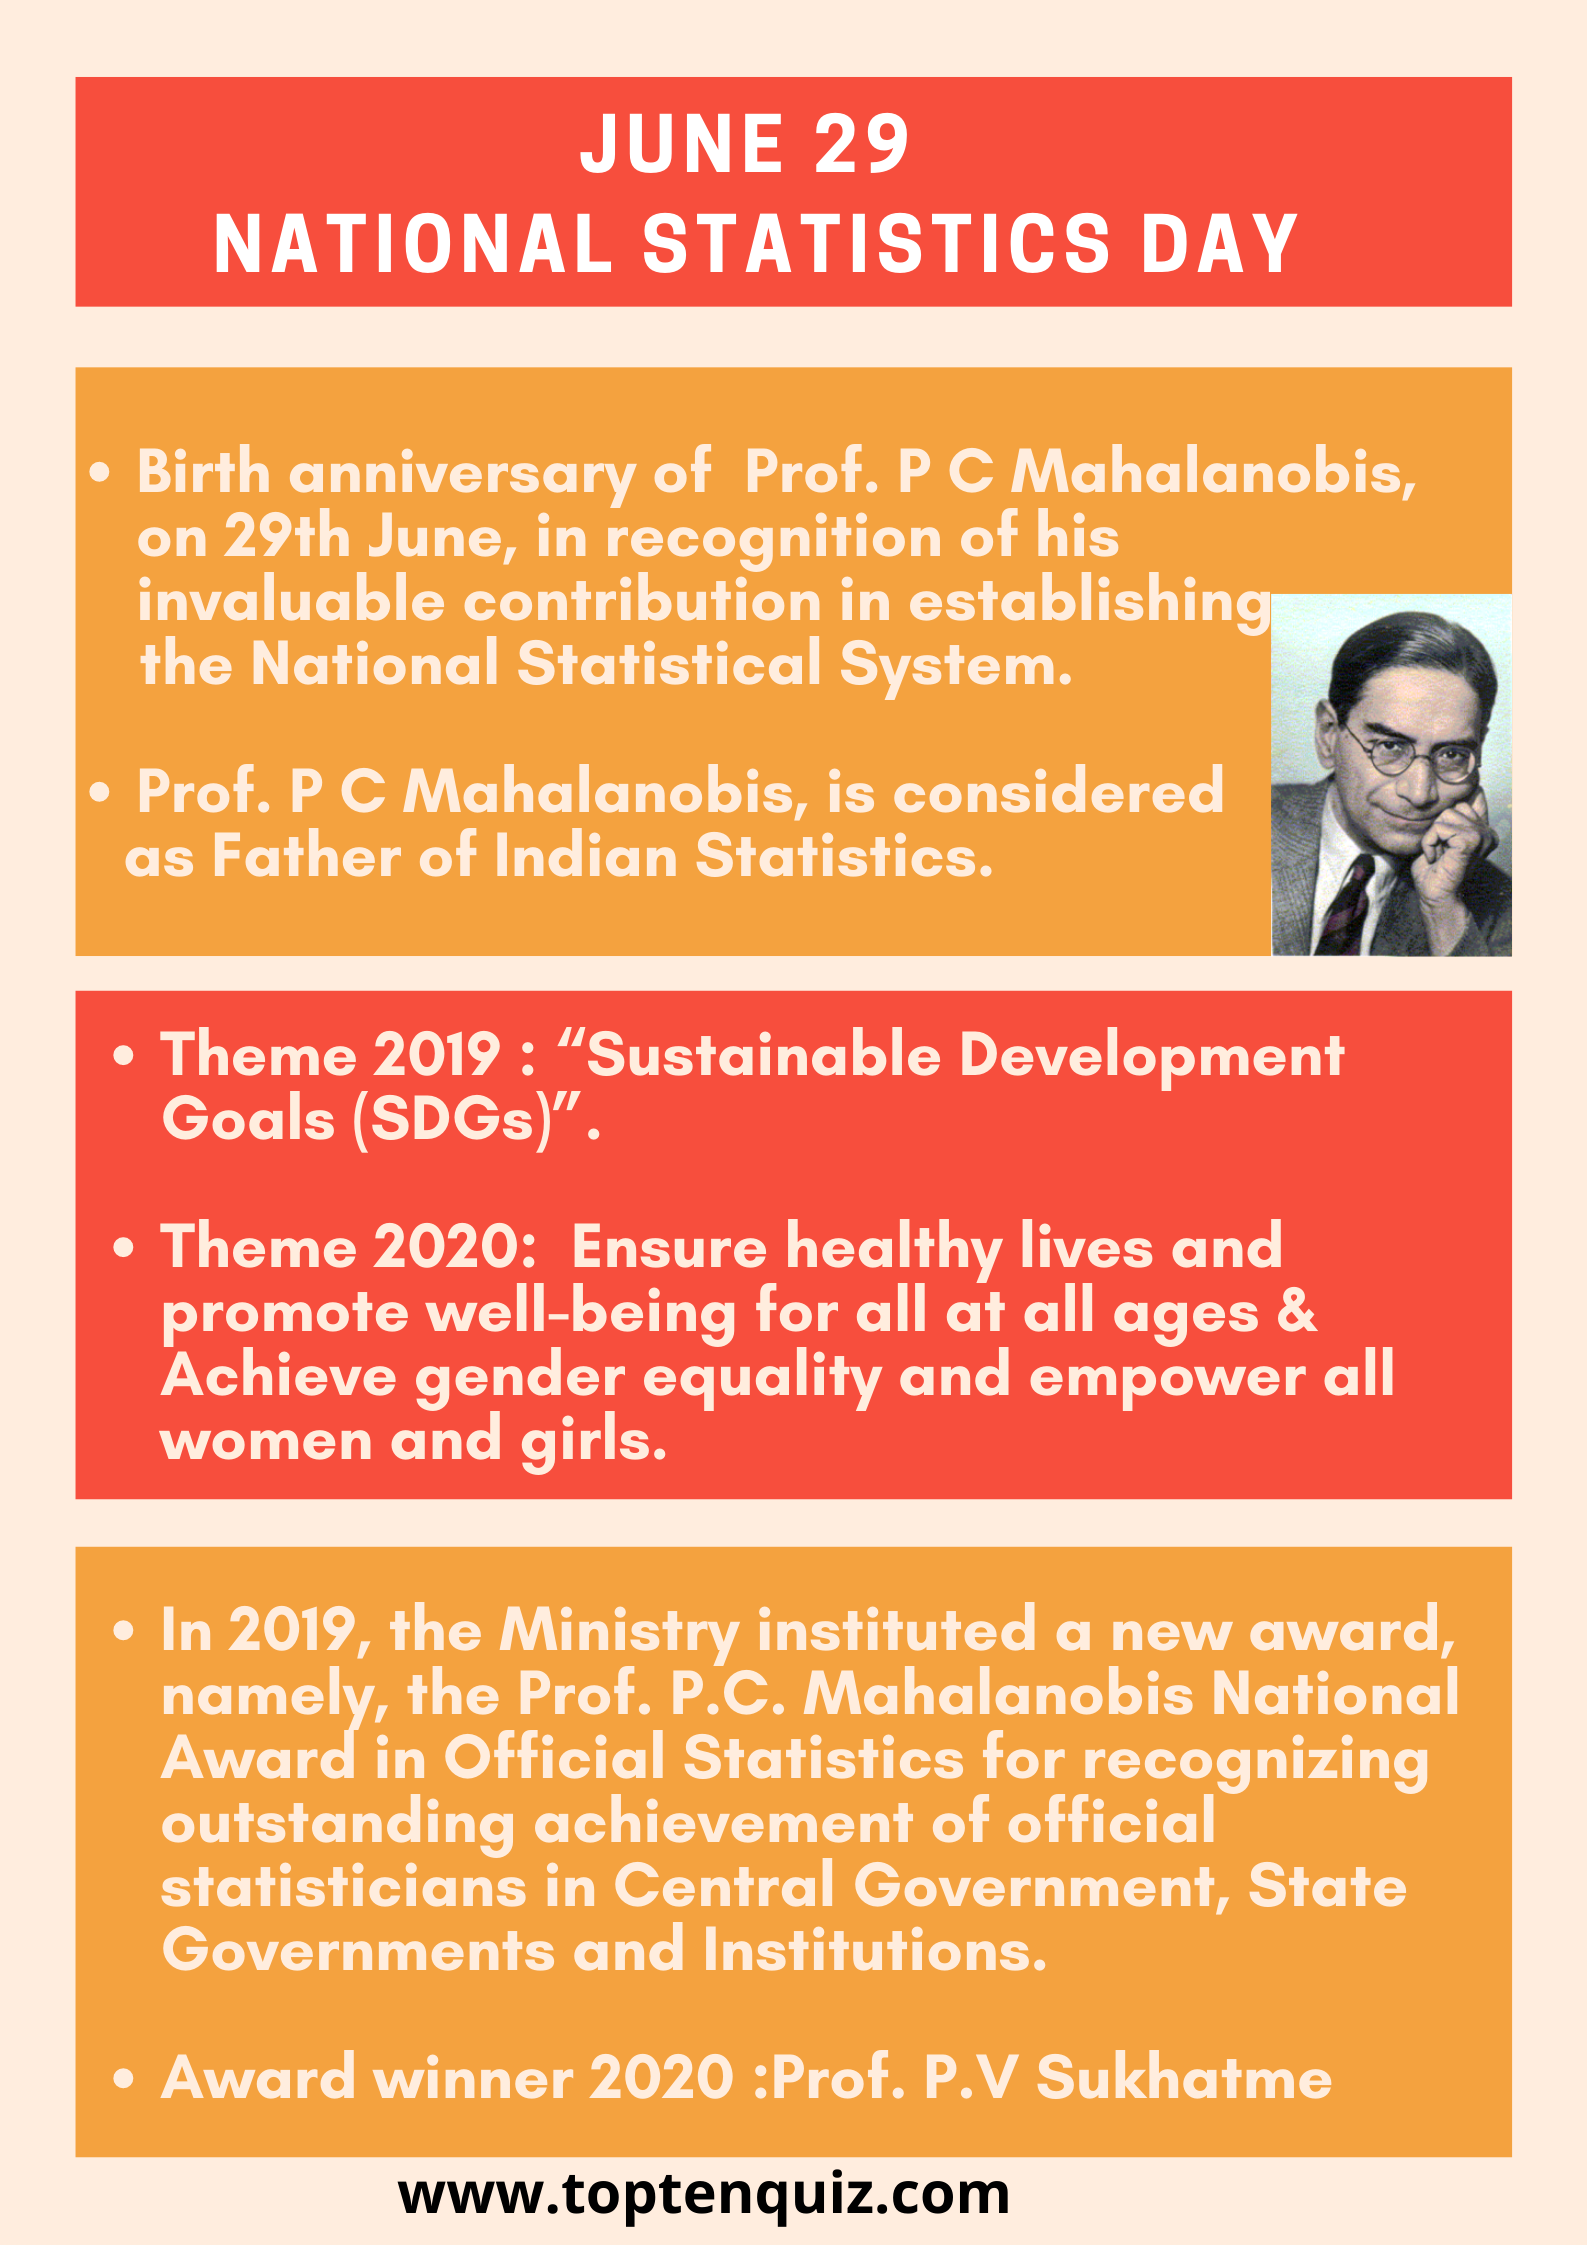 June 29 National Statistics Day -Theme 2019 and 2020